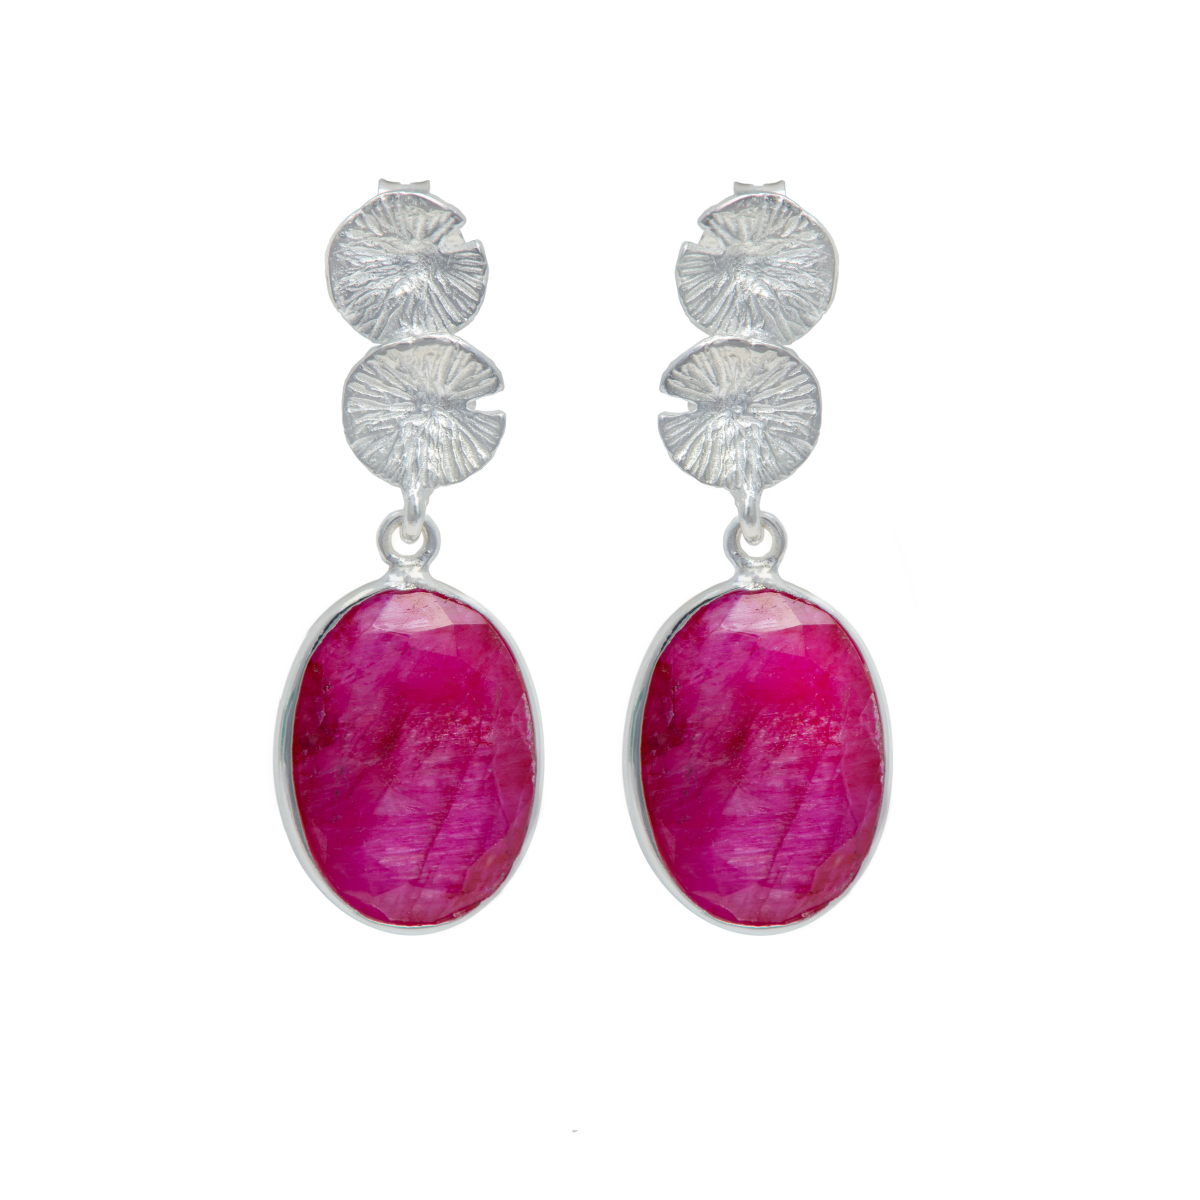 Lily Pad Earrings in Sterling Silver with a Ruby Quartz Gemstone Drop